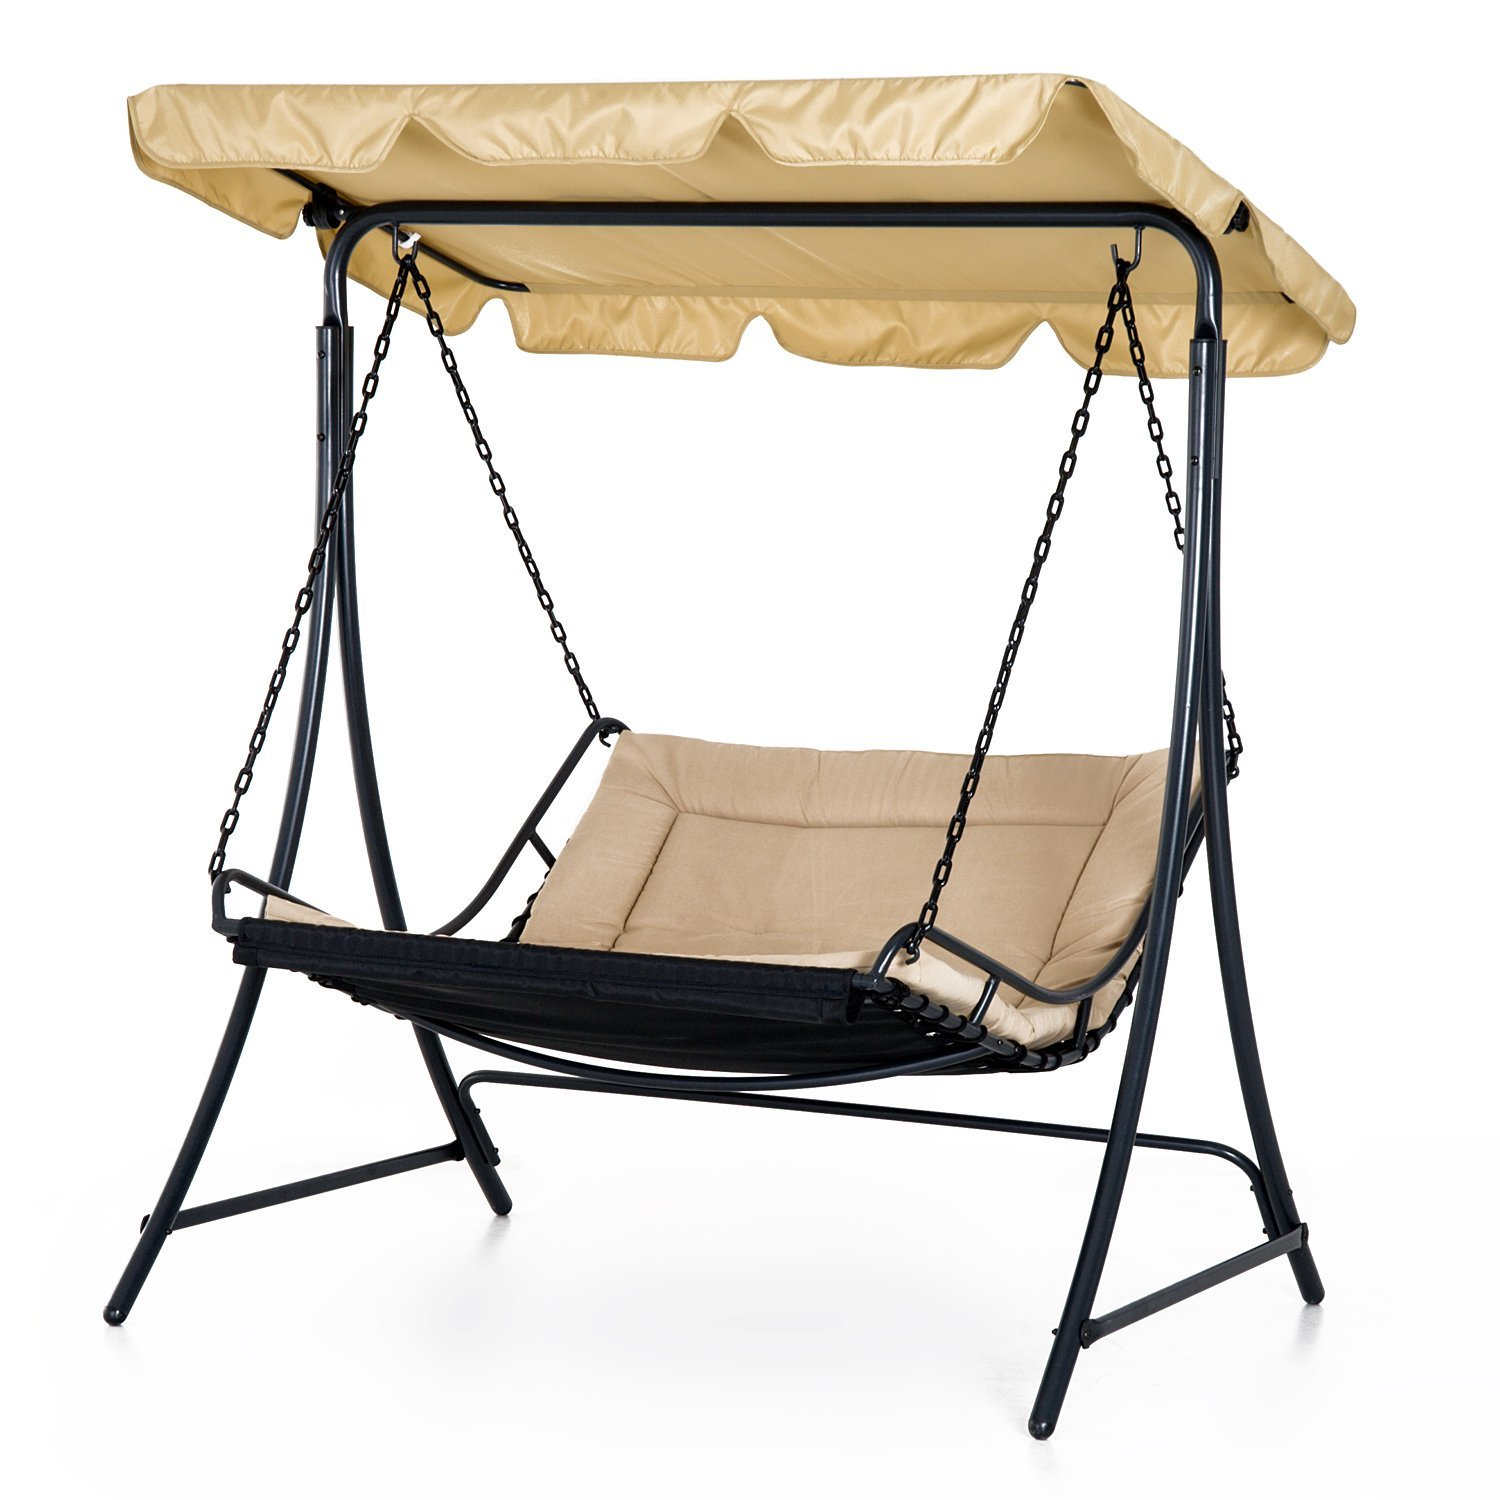 Lovely Covered Hanging Outdoor Patio Swing Hammock Chair Bed Lounger Canopy